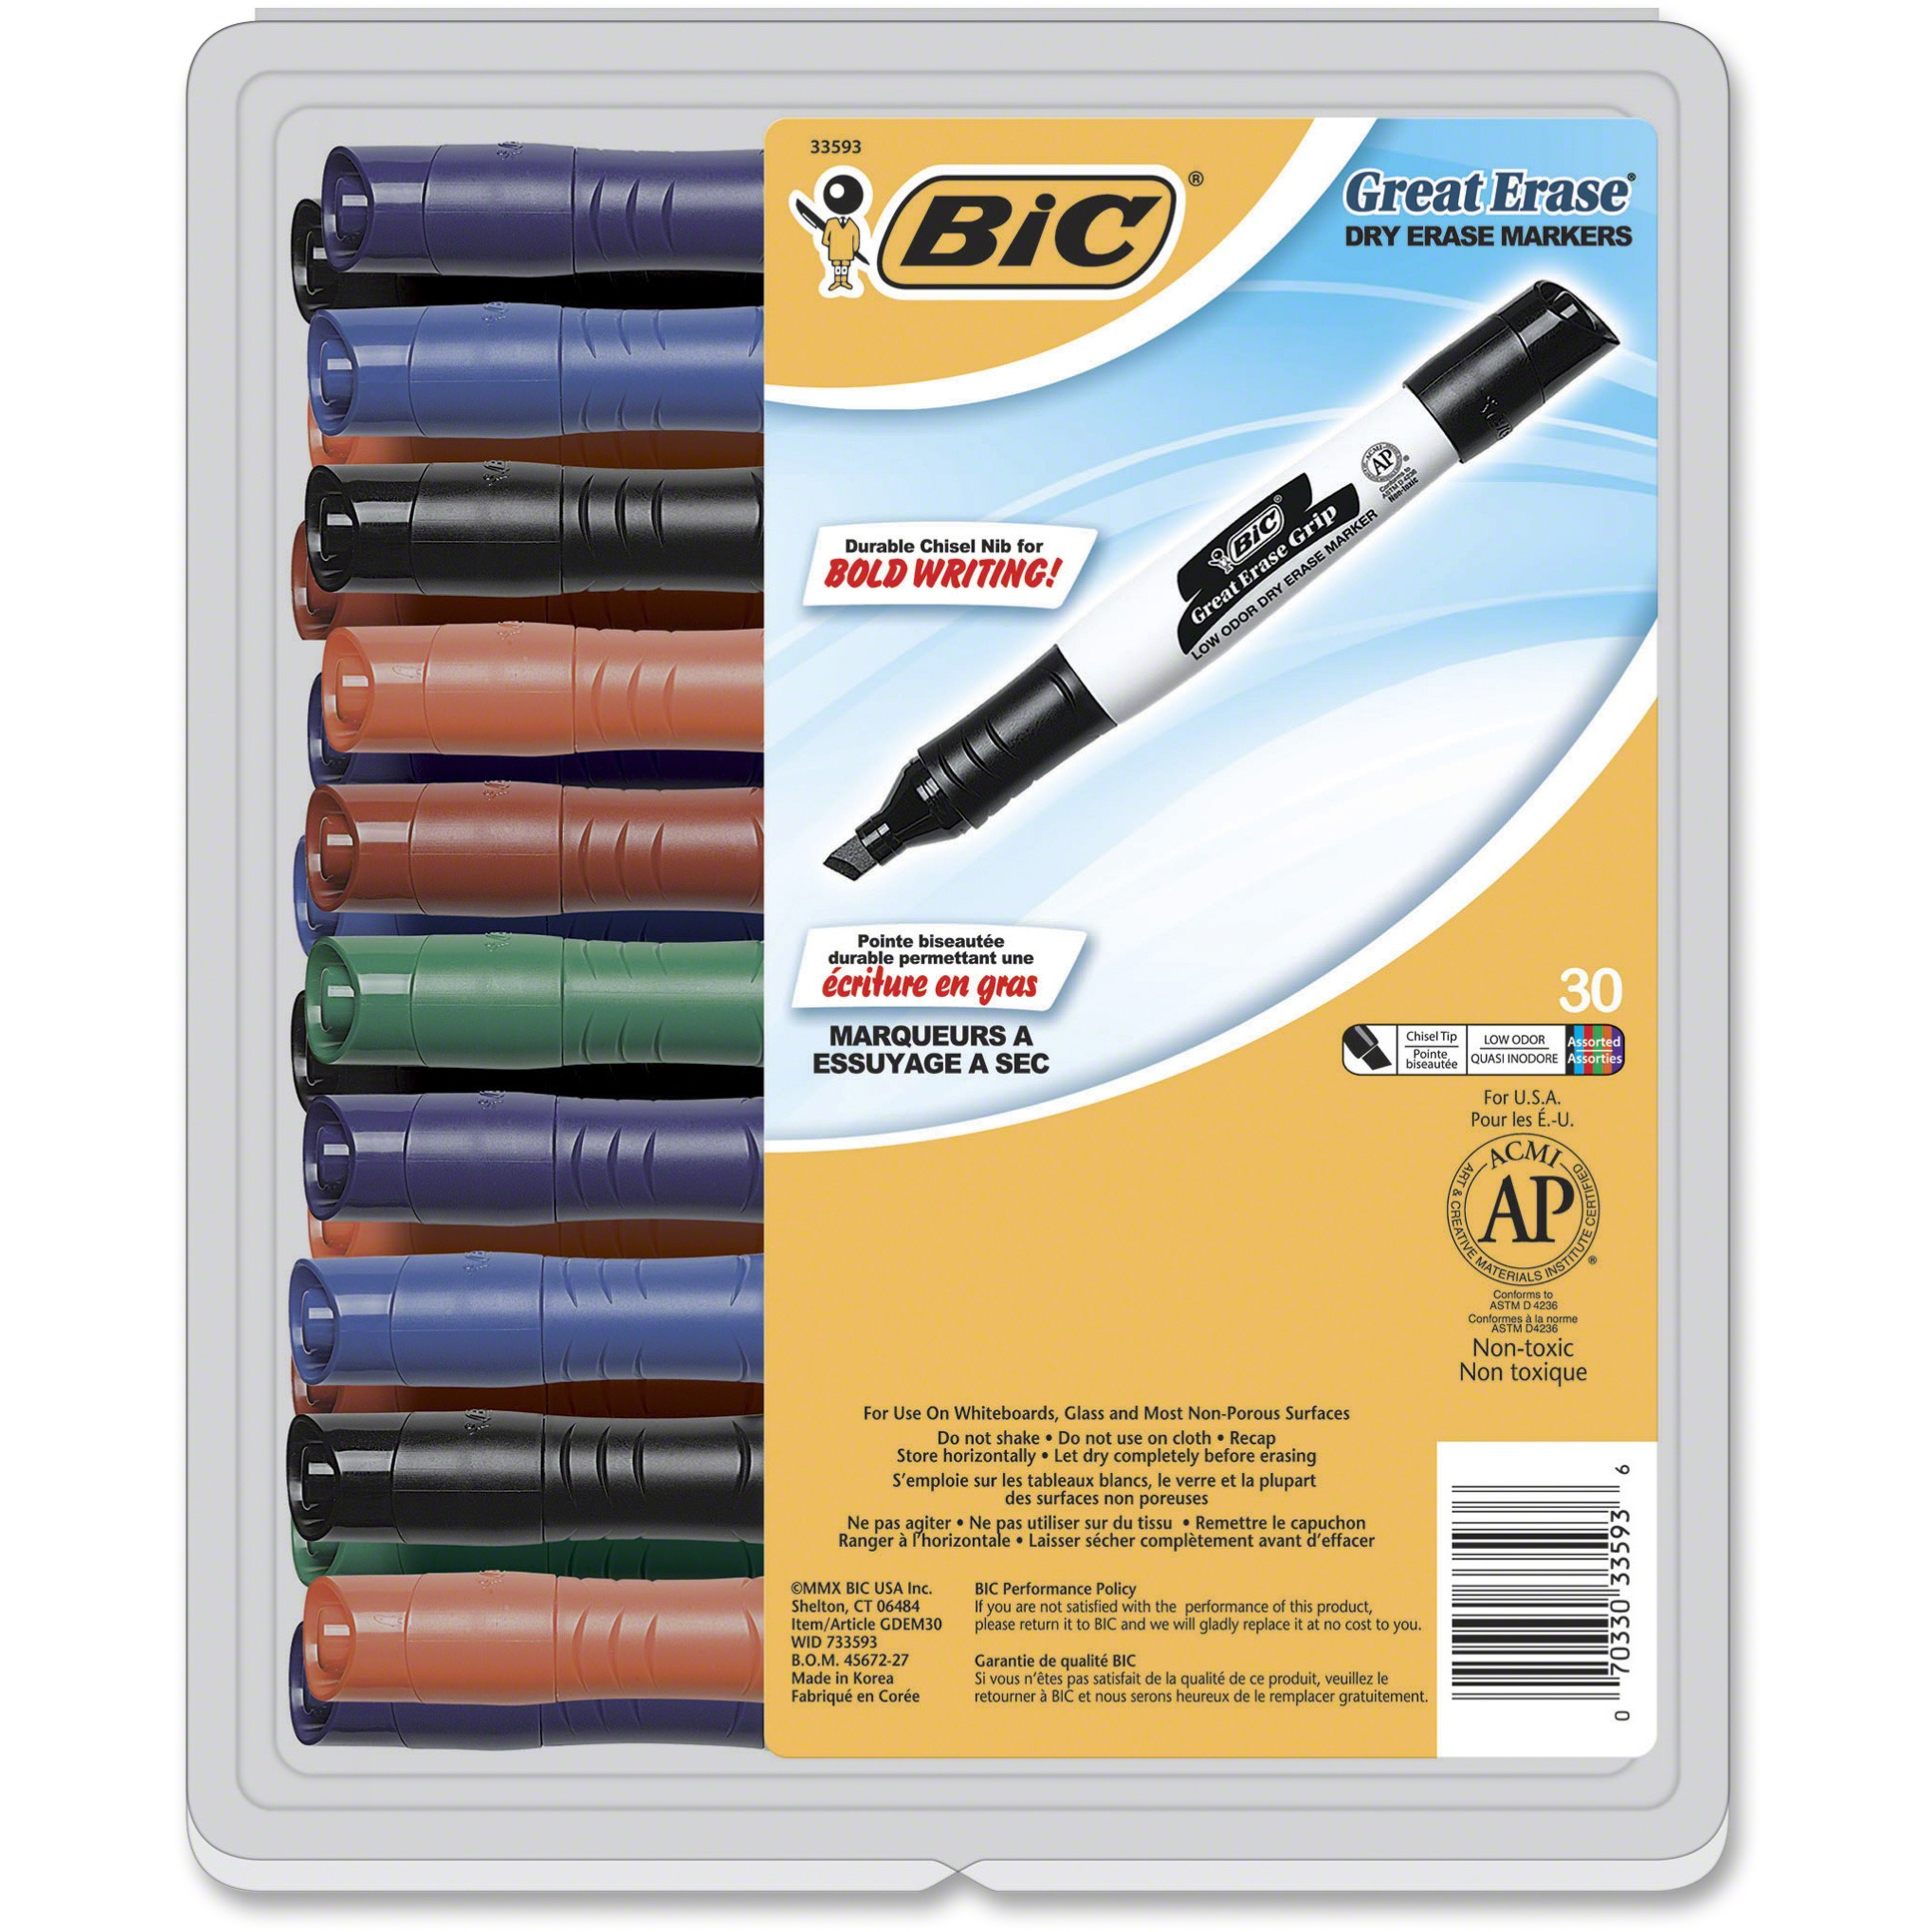 BIC Great Erase Grip Dry Erase Marker, Tank Style, Chisel Tip, Assorted Colors, 30-Count